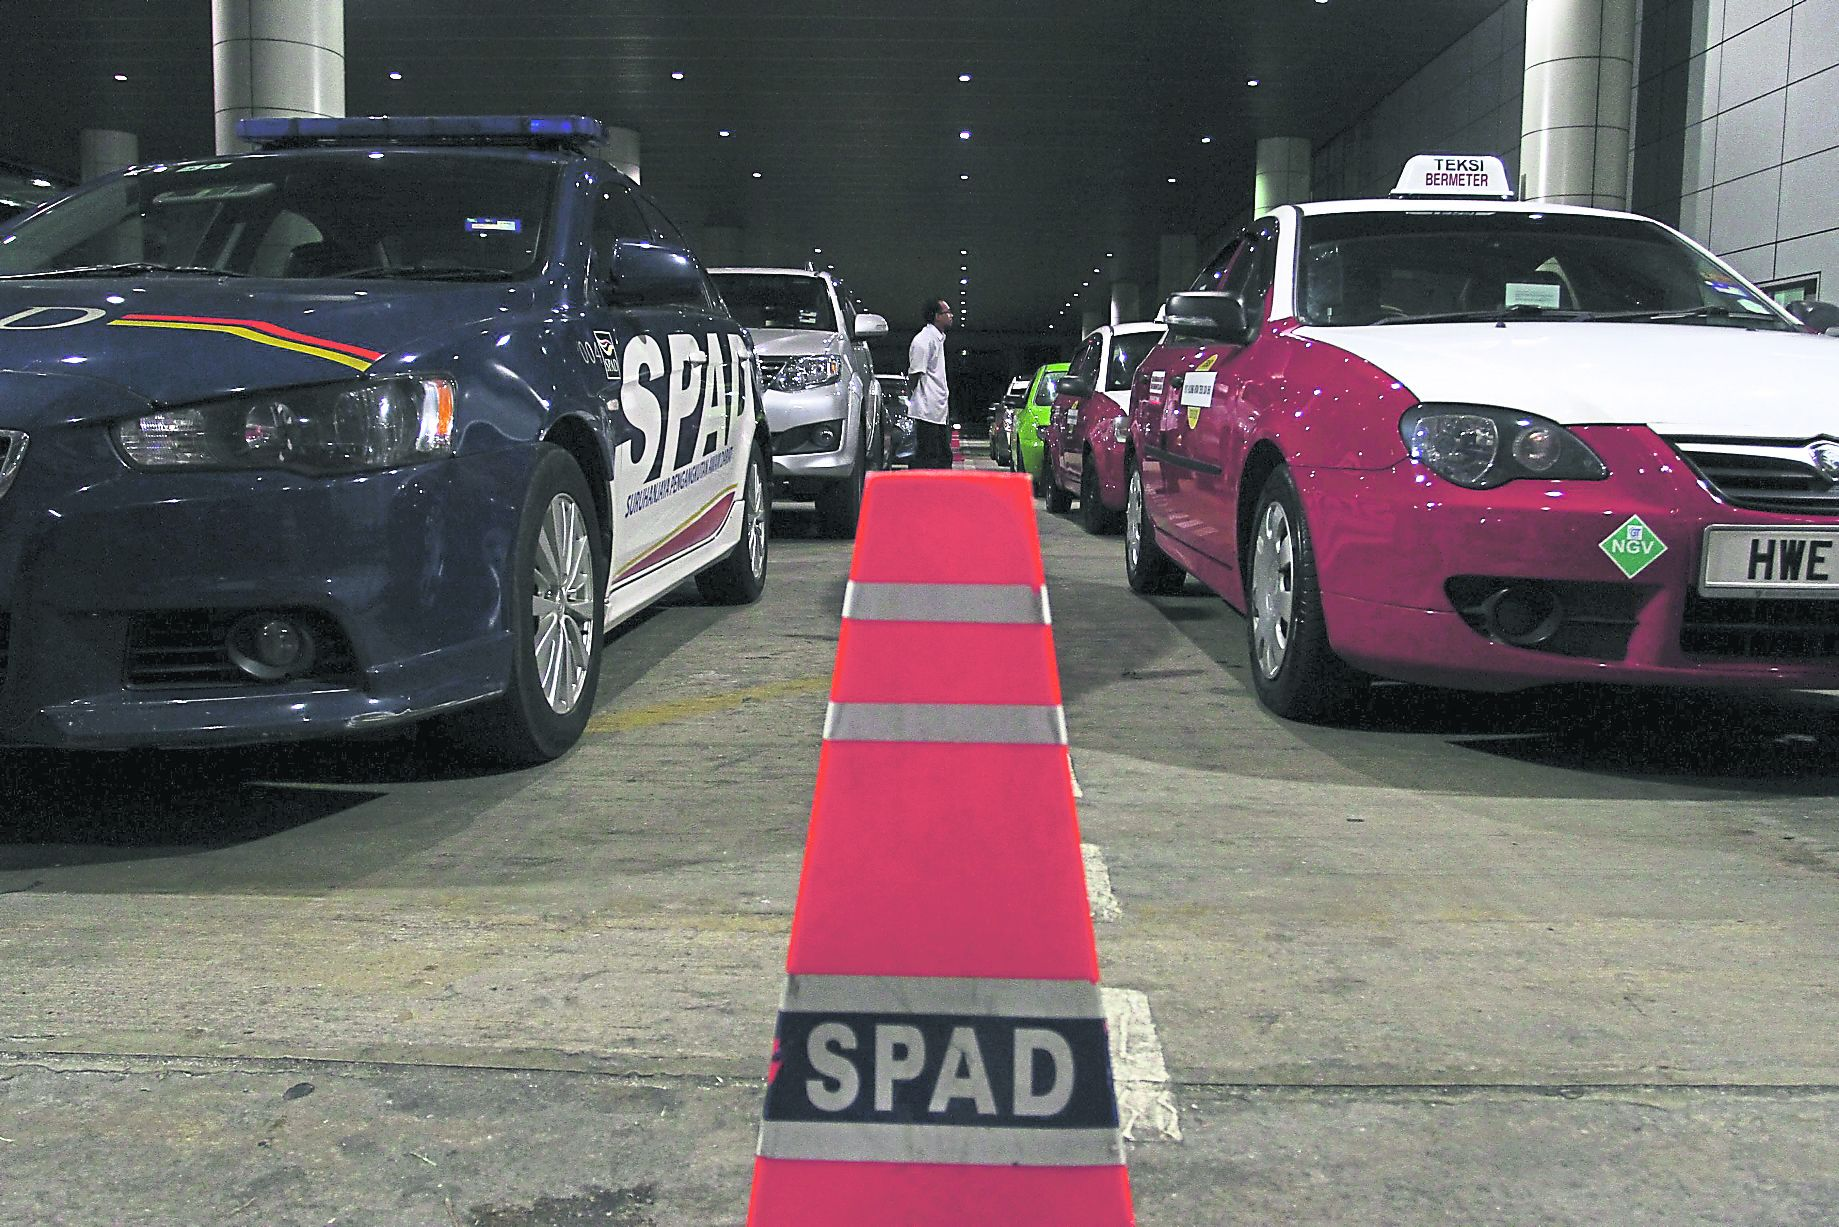 A SPAD official inspects illegal taxis during Ops Parasit. — Picture by Azneal Ishak